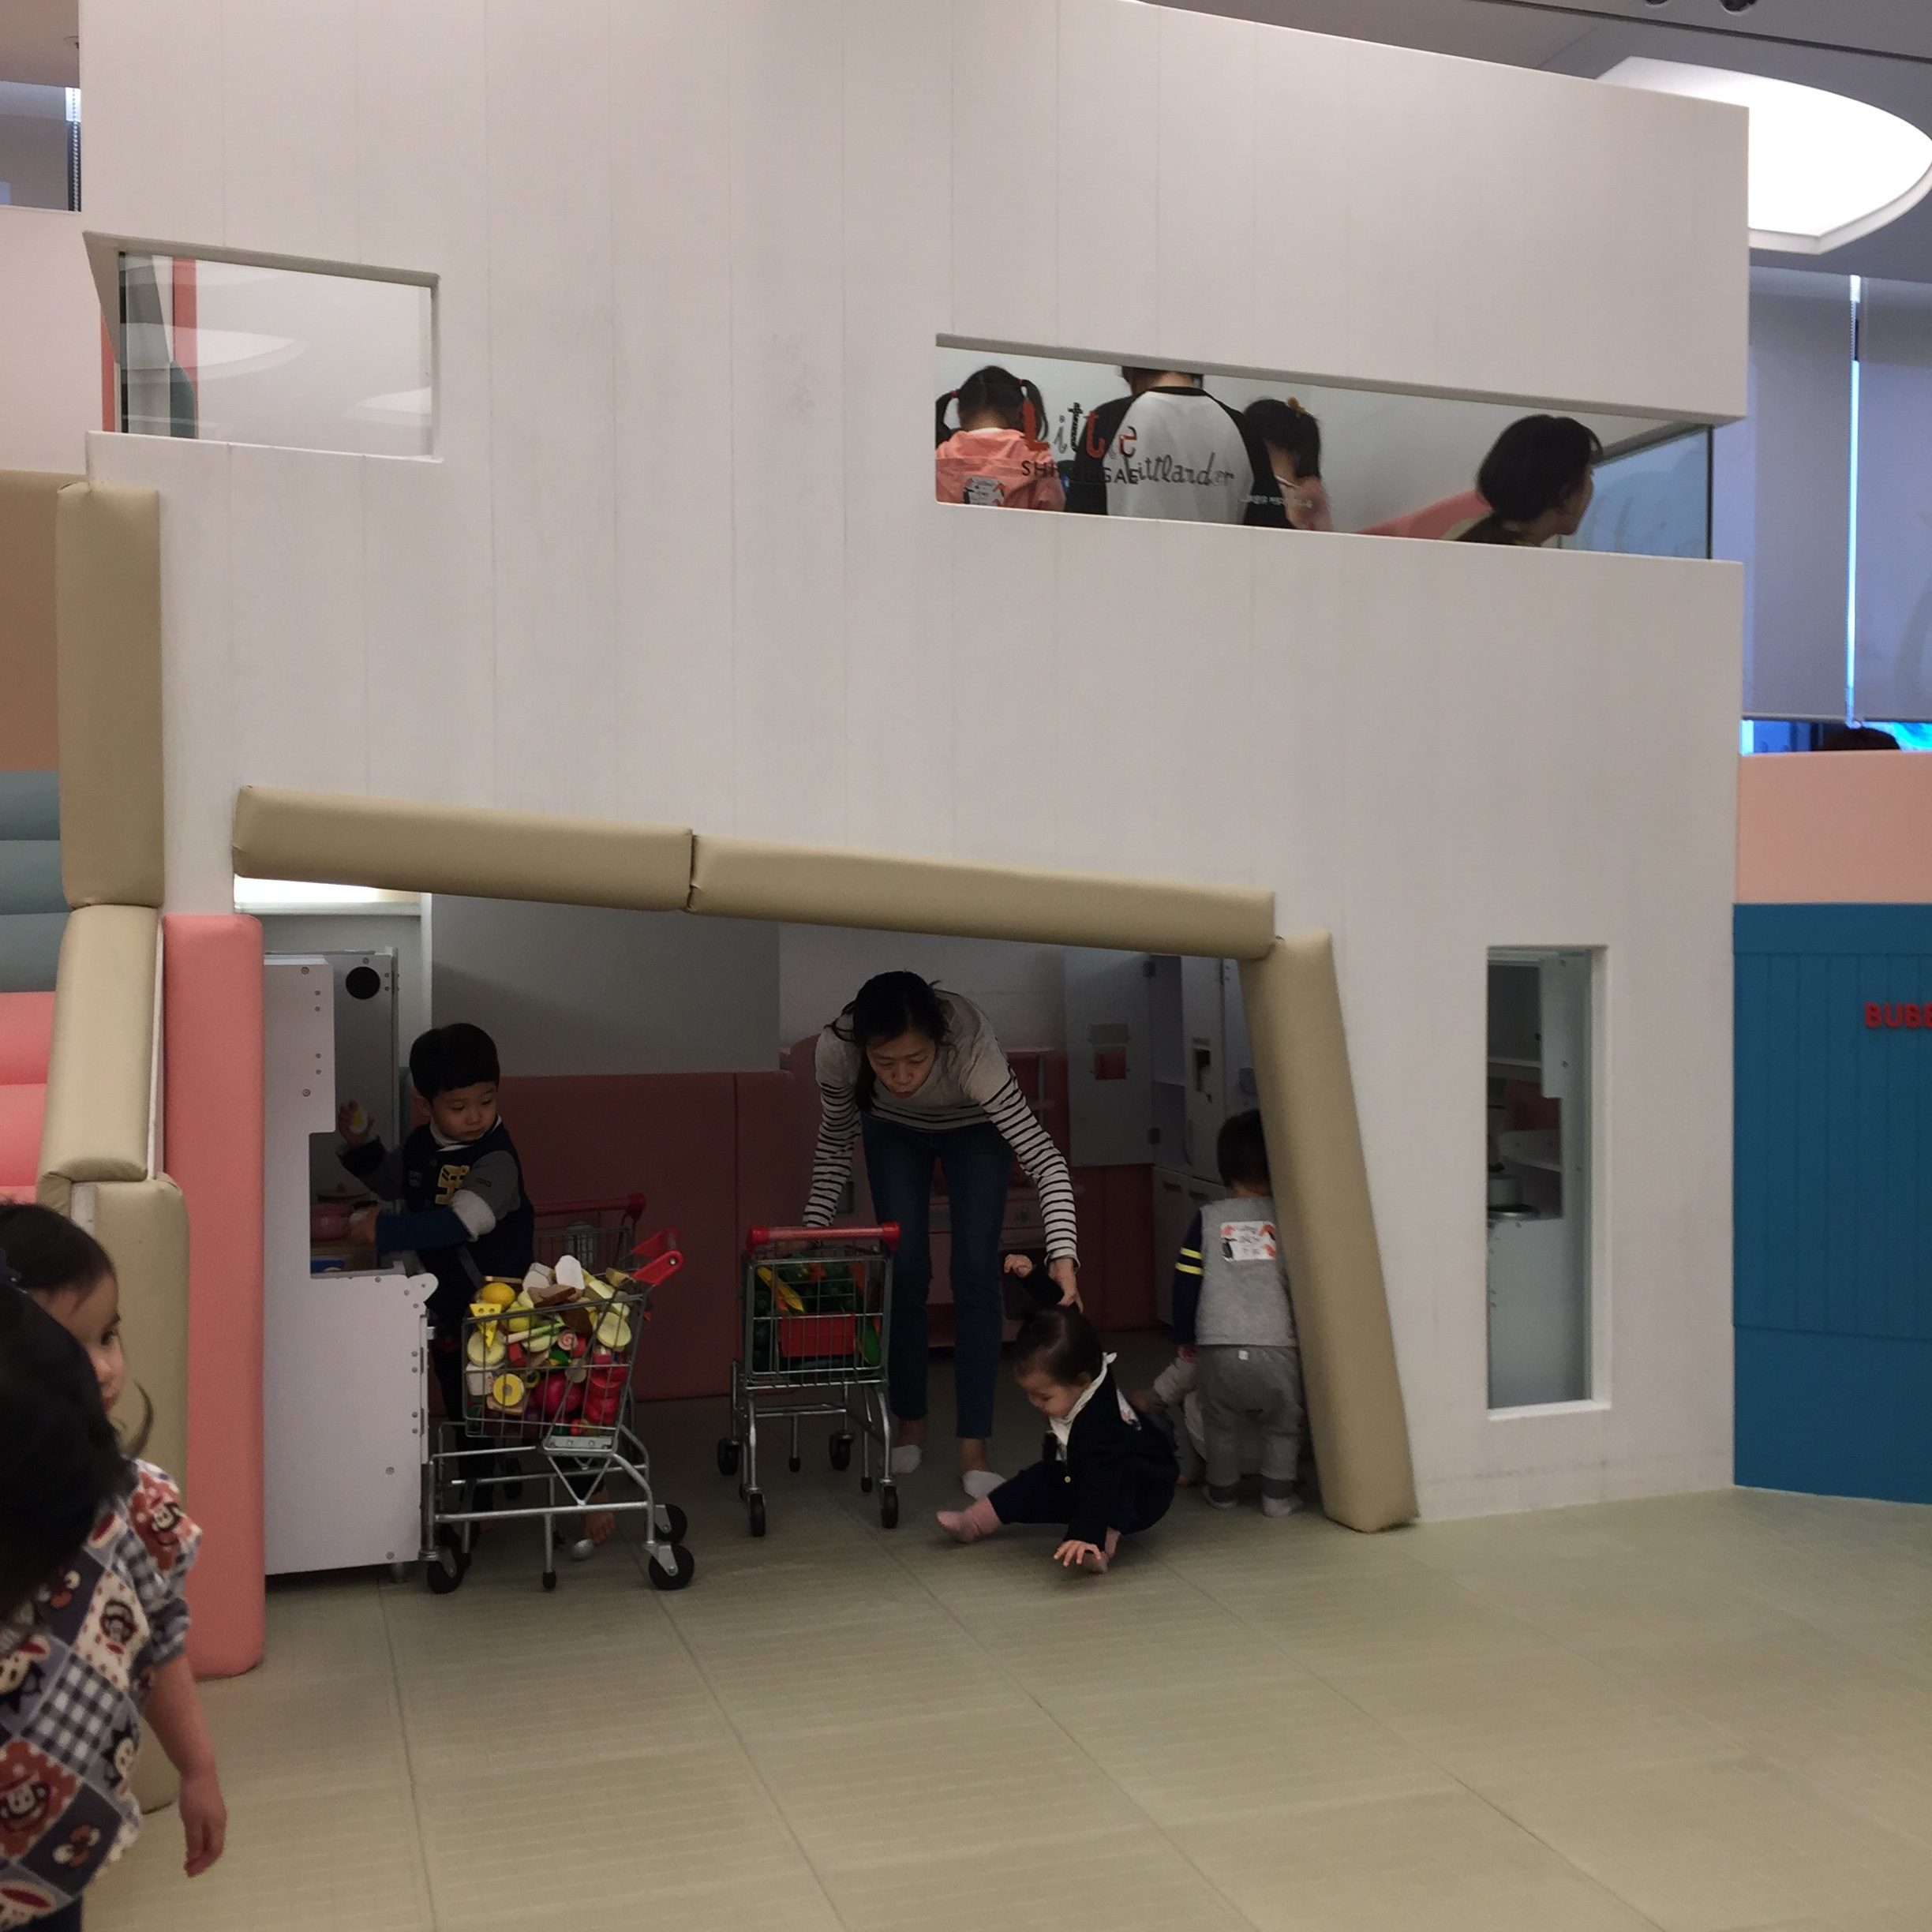 Kids toddler friendly places Seoul